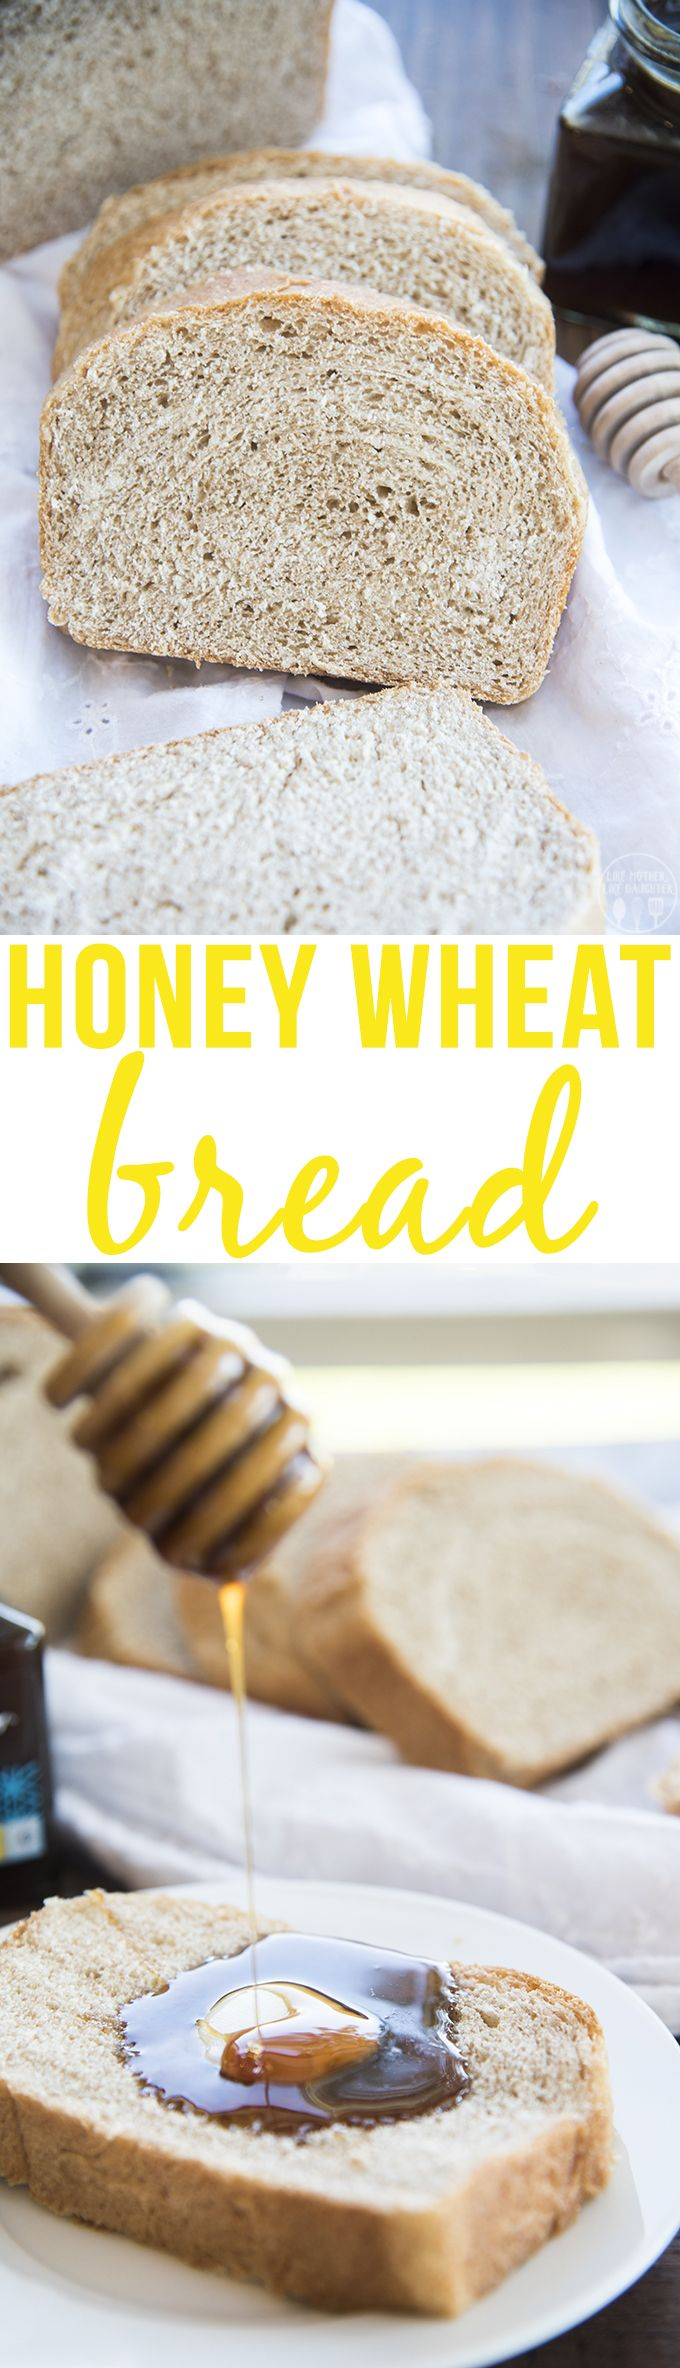 **This honey wheat bread is made in partnership with Buzz + Bloom Honey, as…